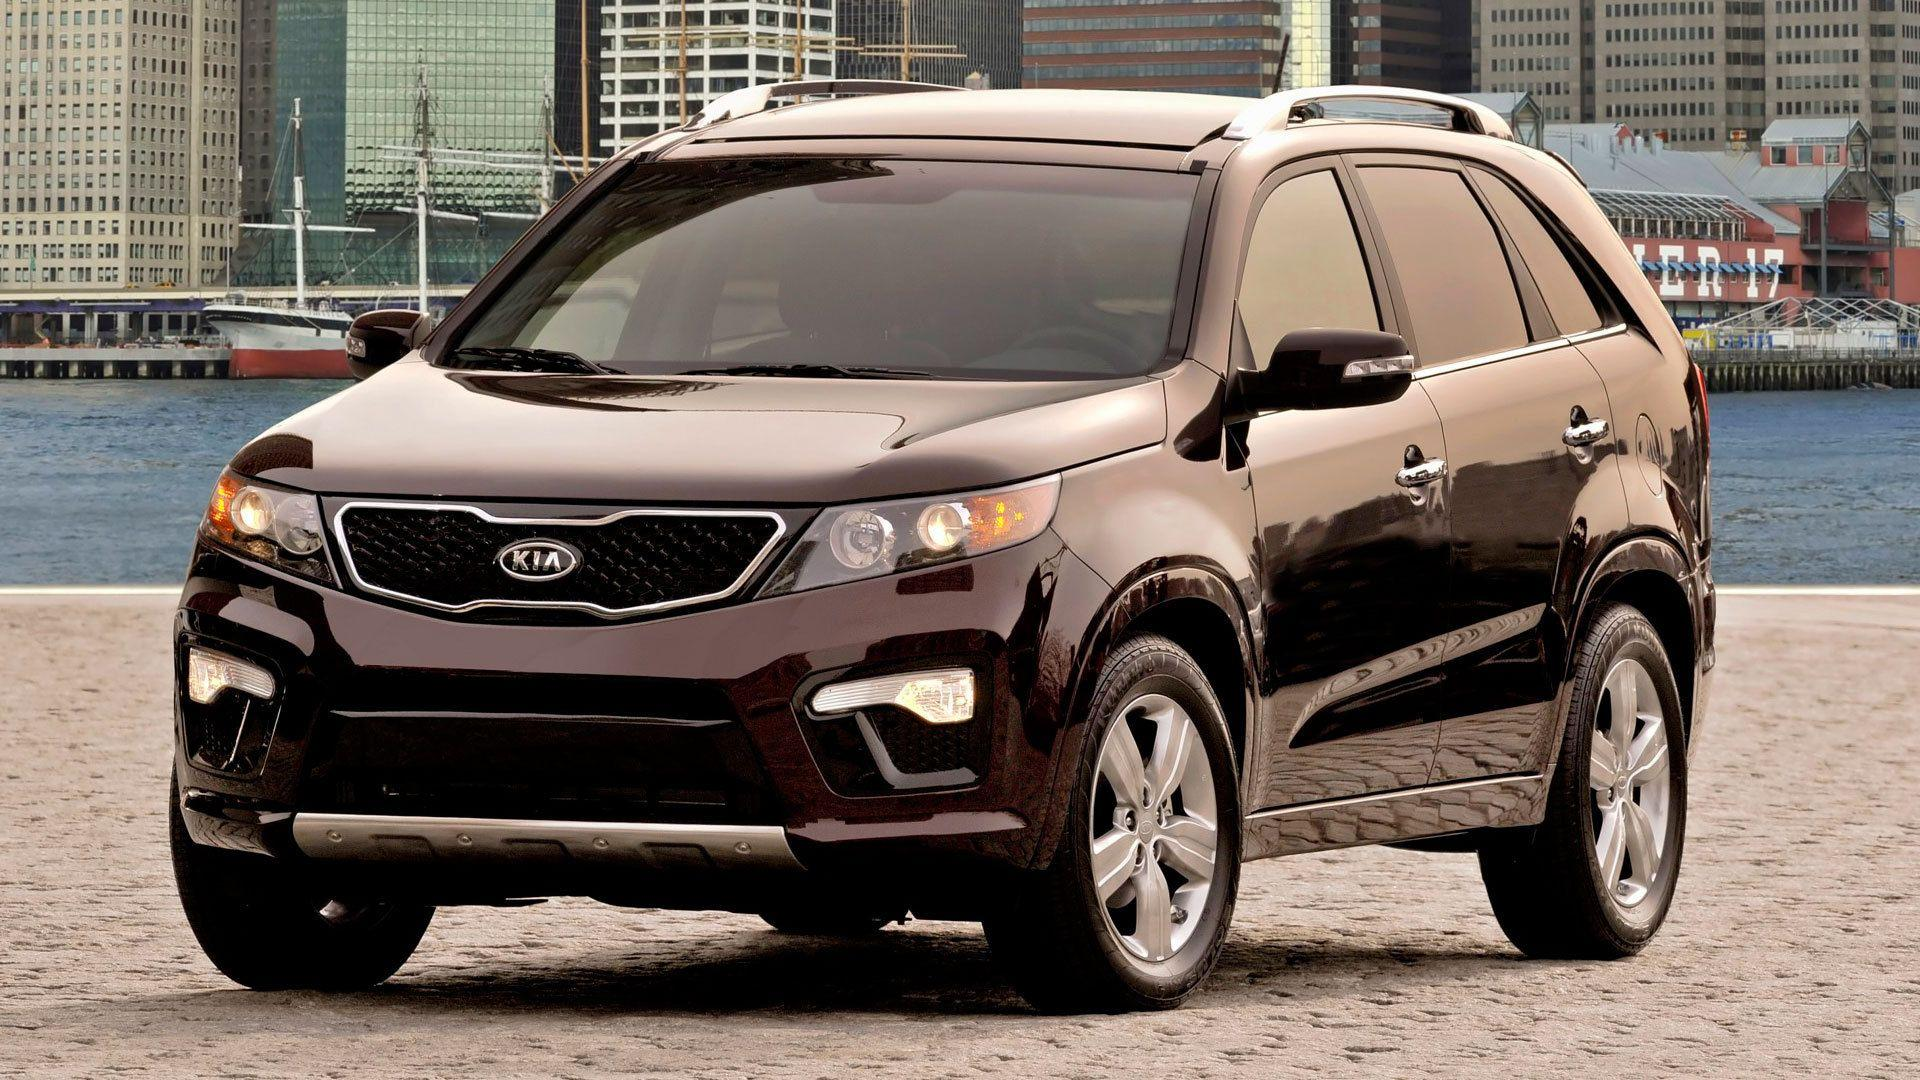 Test drive the car Kia Sorento wallpapers and image